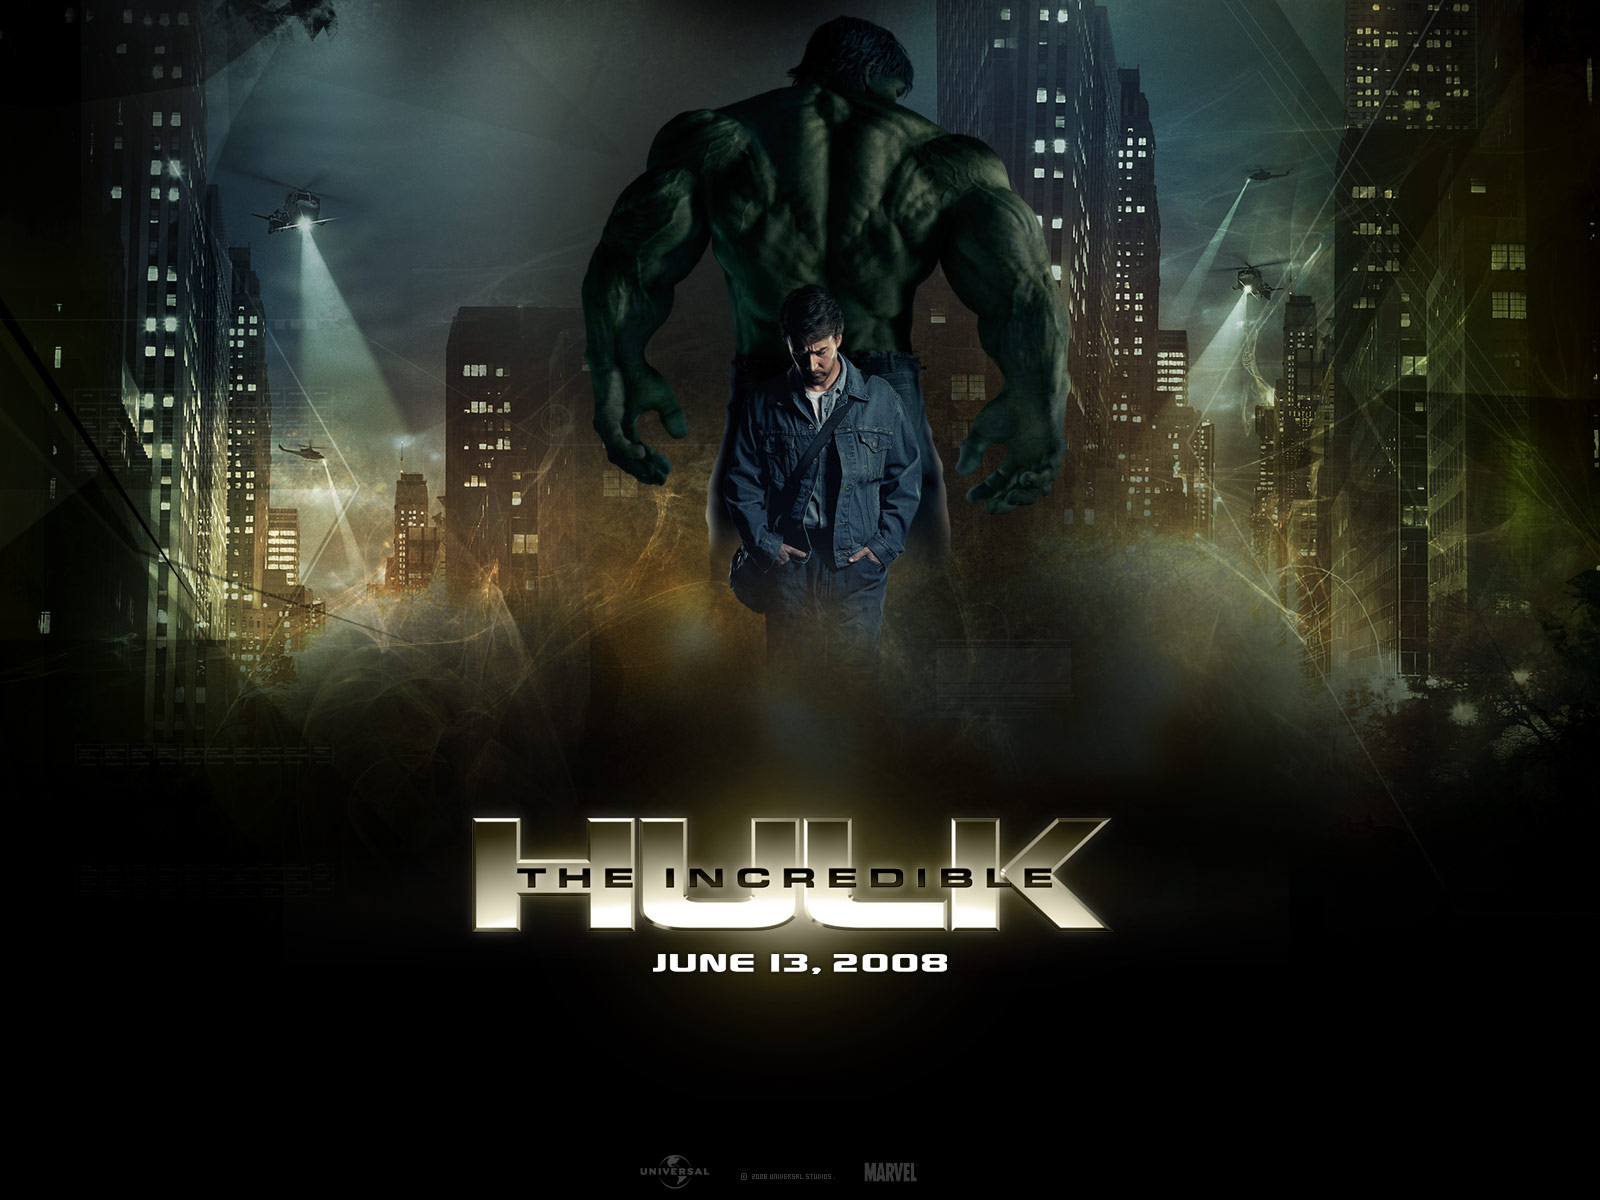 http://3.bp.blogspot.com/_--5tv0rYkQg/TDsysbuYtzI/AAAAAAAAFyE/GbHwcDwXJs8/s1600/the_incredible_hulk_2008_edward_norton.jpg